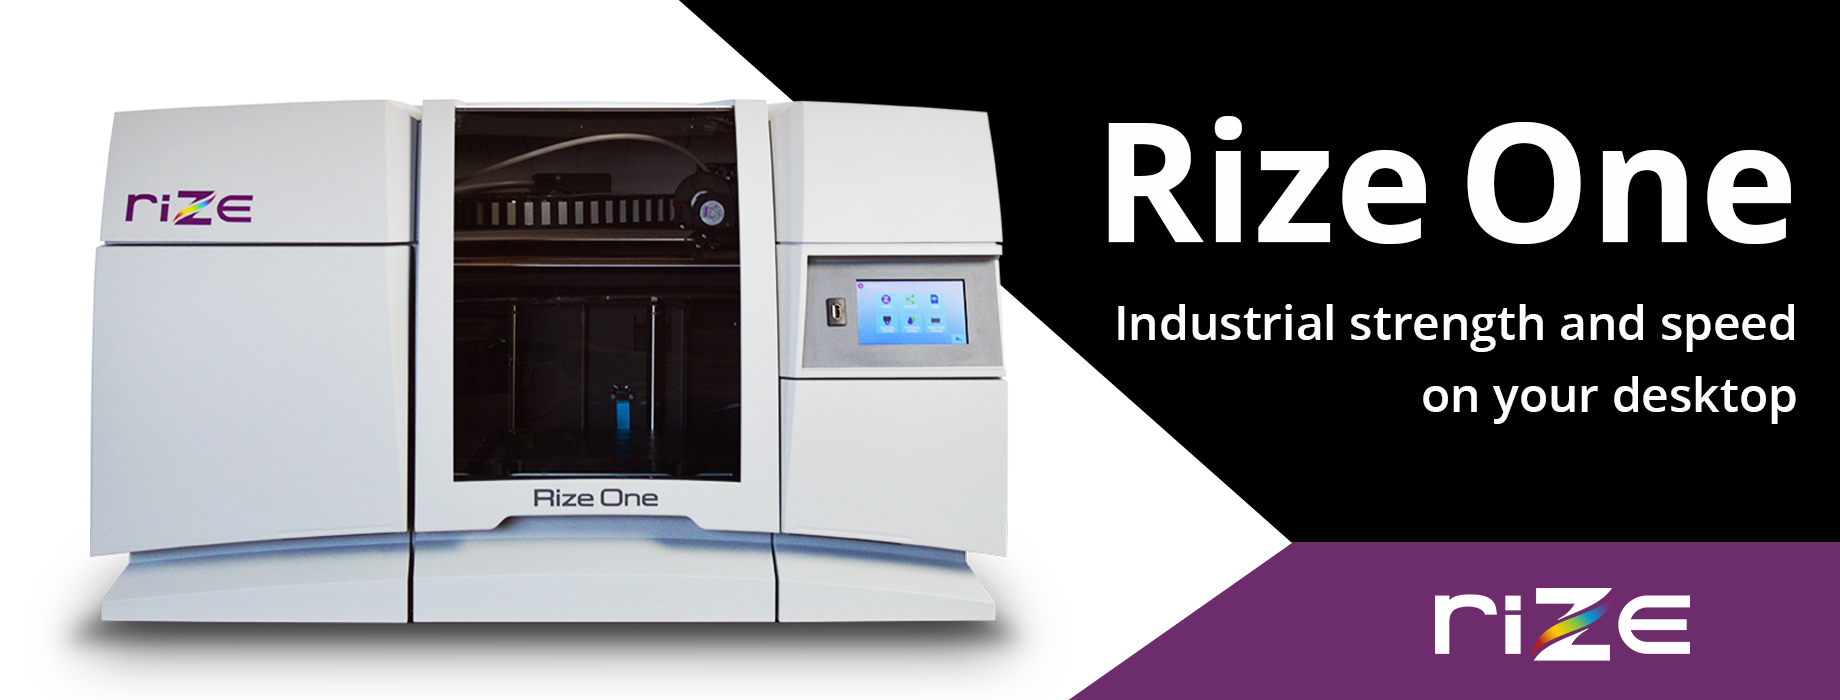 Rize One combines strength, speed, safety and security for affordable and sustainable production. Augmented Polymer Deposition (APD) combines extrusion and material jetting to produce incredibly strong parts with almost no post-processing.